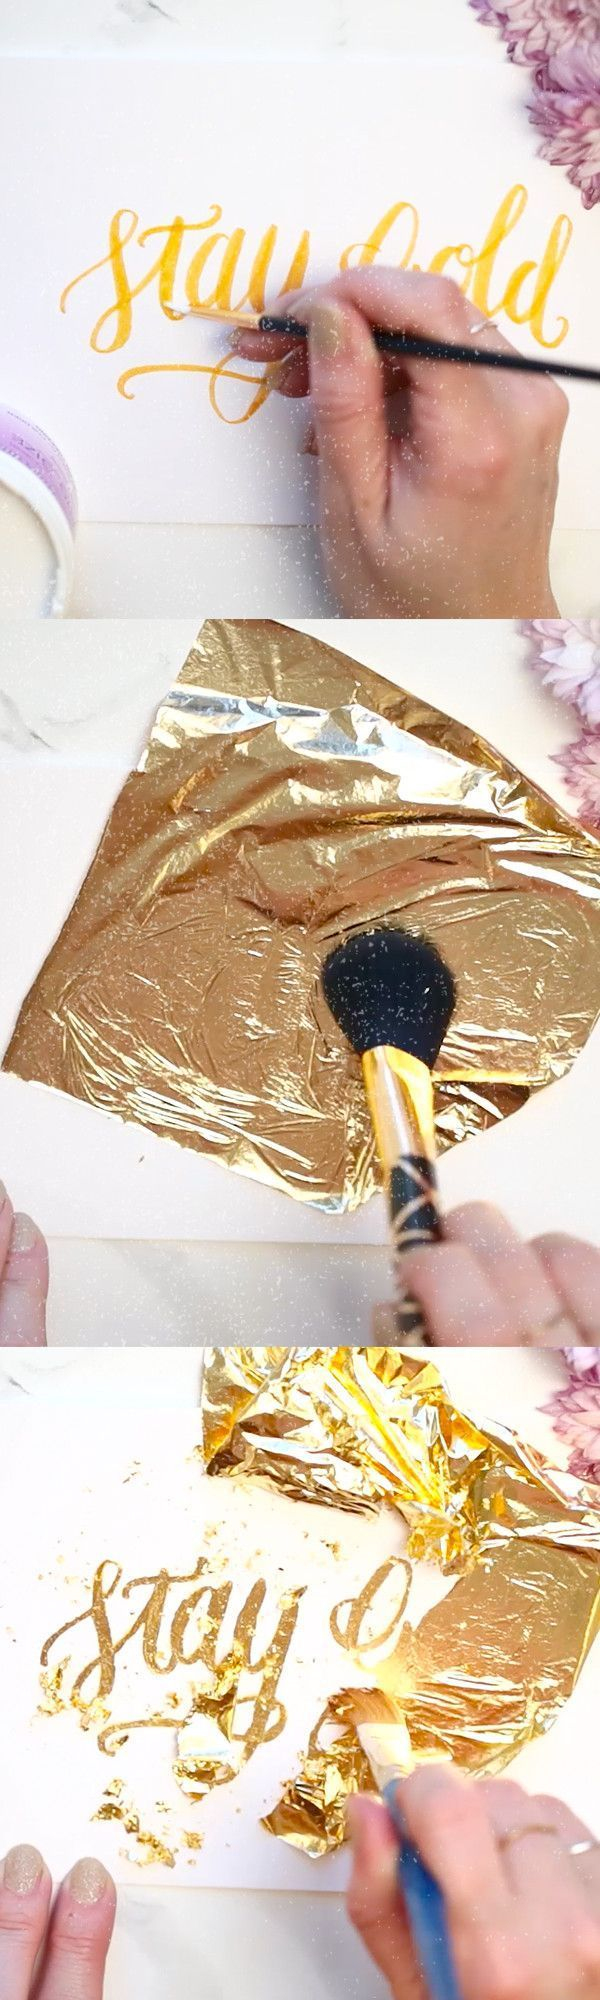 On the Creative Market Blog - How To Use Gold Foil To Create Greeting Cards & Invitations